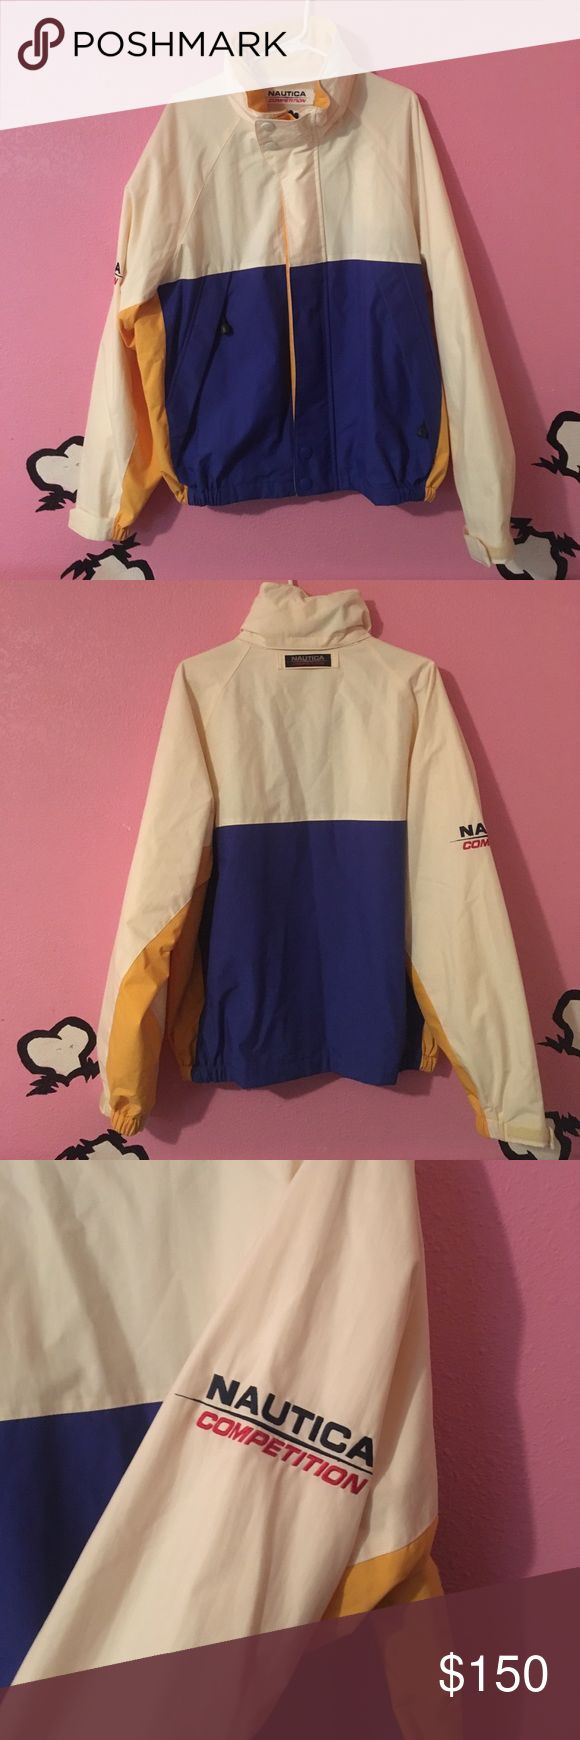 Vintage Nautica Competition jacket Super dope Vintage Nautica Competition jacket. Has a hidden pocket inside and a hidden hoodie that you can pull out, which makes it very unique. Size L in men's fits a size L in woman as oversized jacket 💁🏻 has a supreme vibe Taking offers- Nautica Jackets & Coats